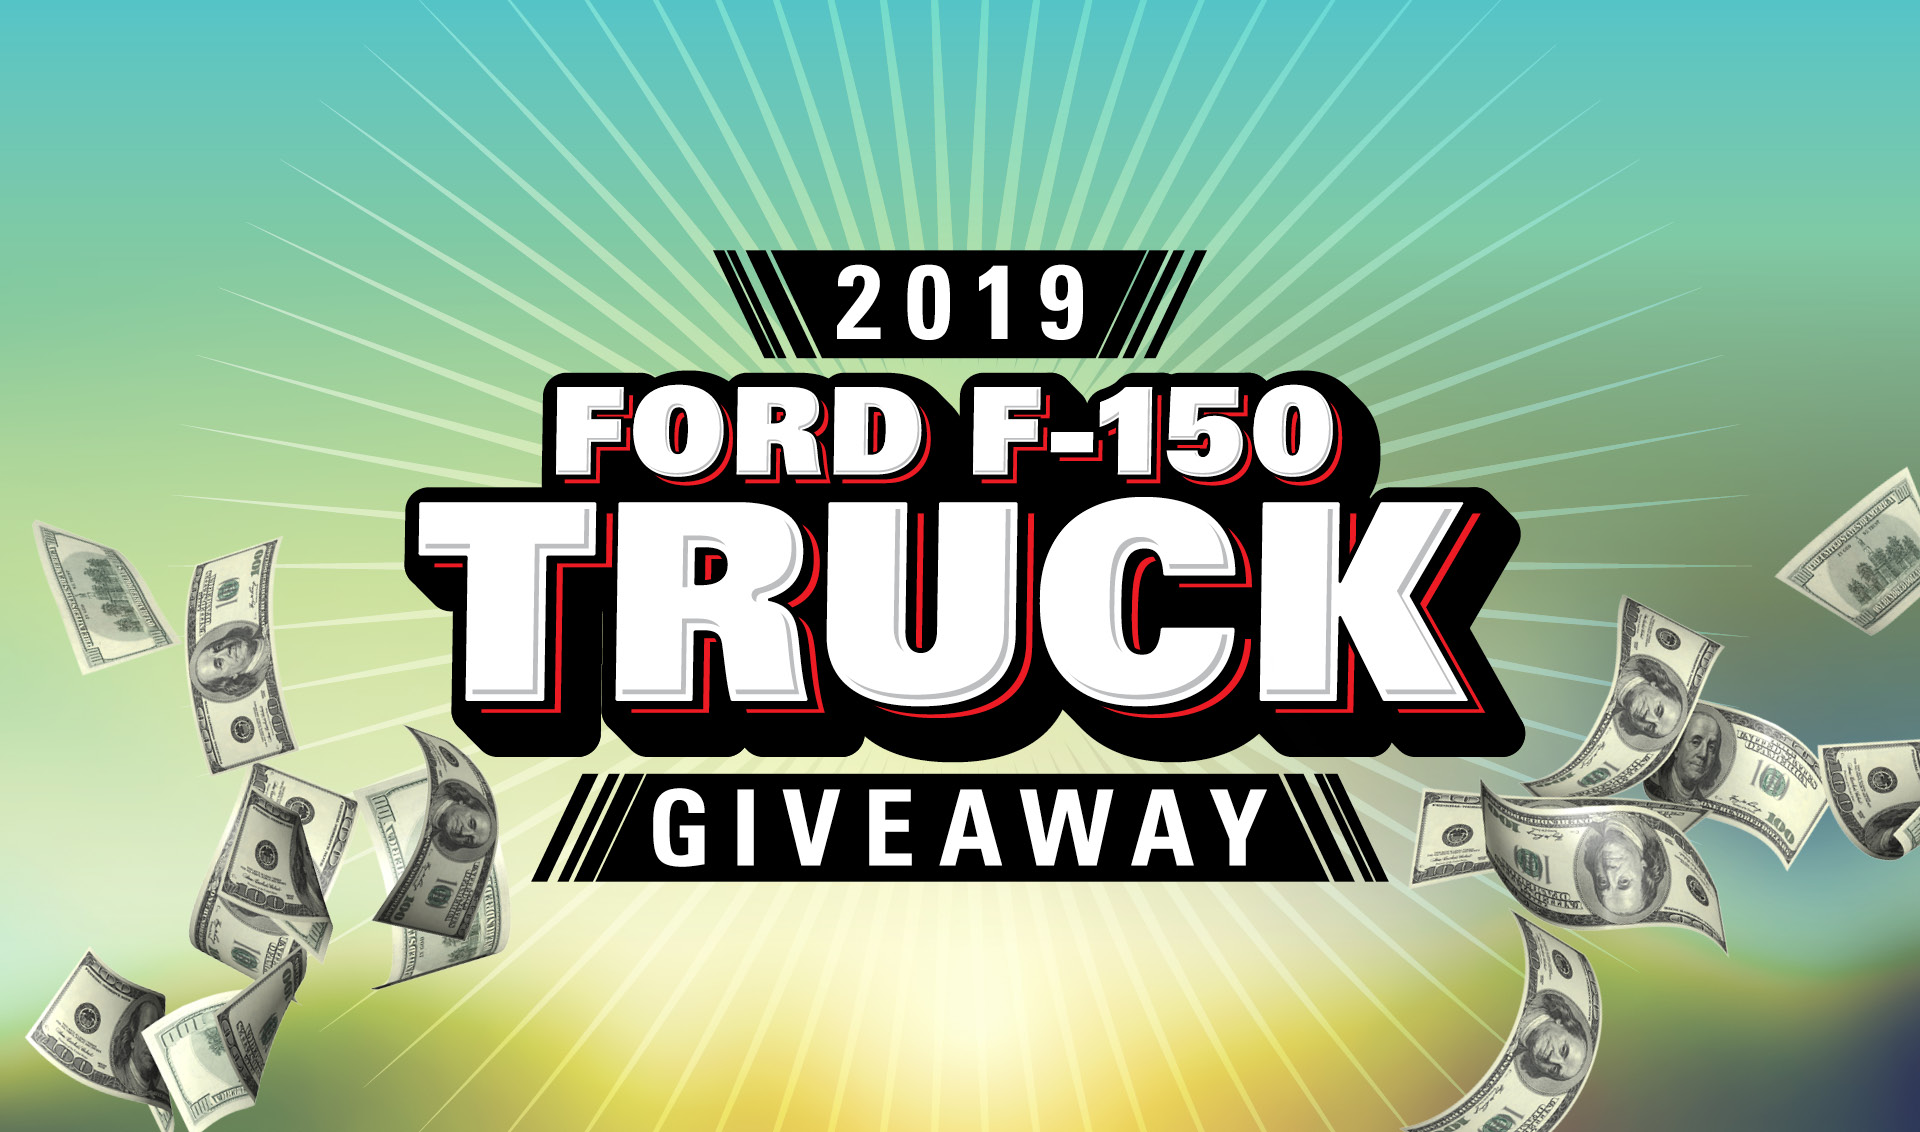 2019 Ford F-150 Truck Giveaway